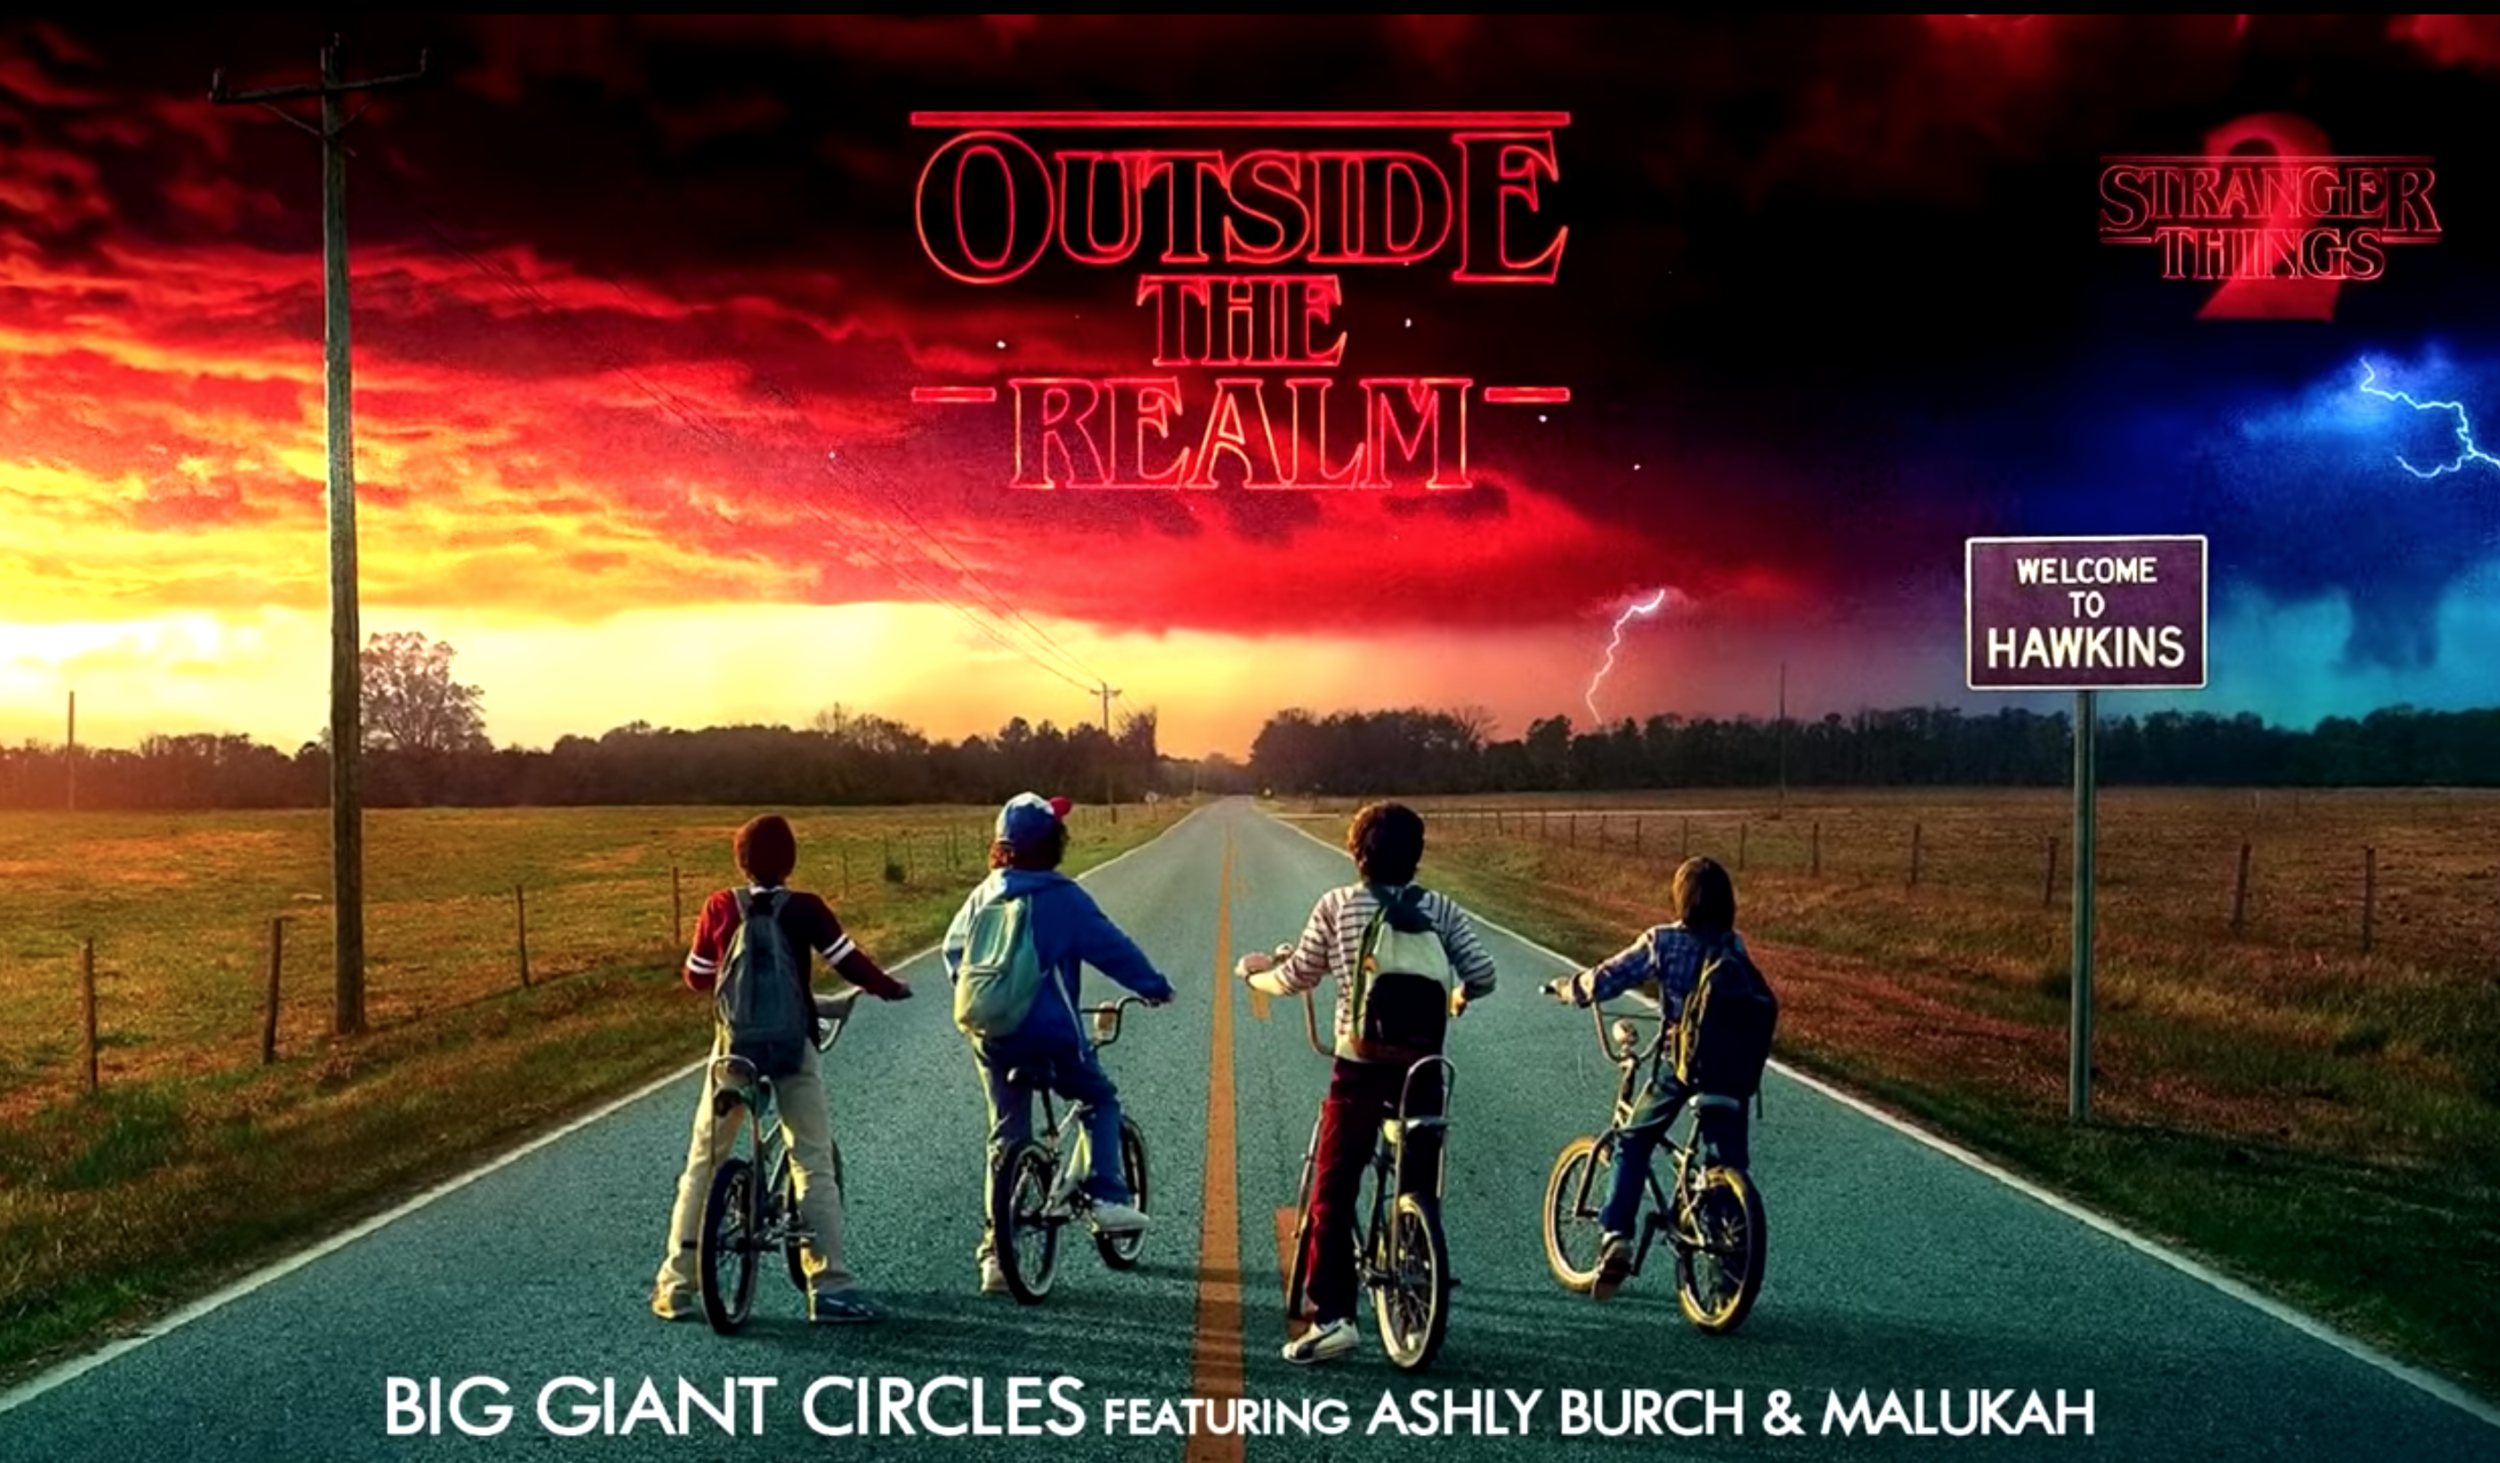 Big Giant Circles Outside The Realm featured in Netflix's smash hit 'Stranger Things'